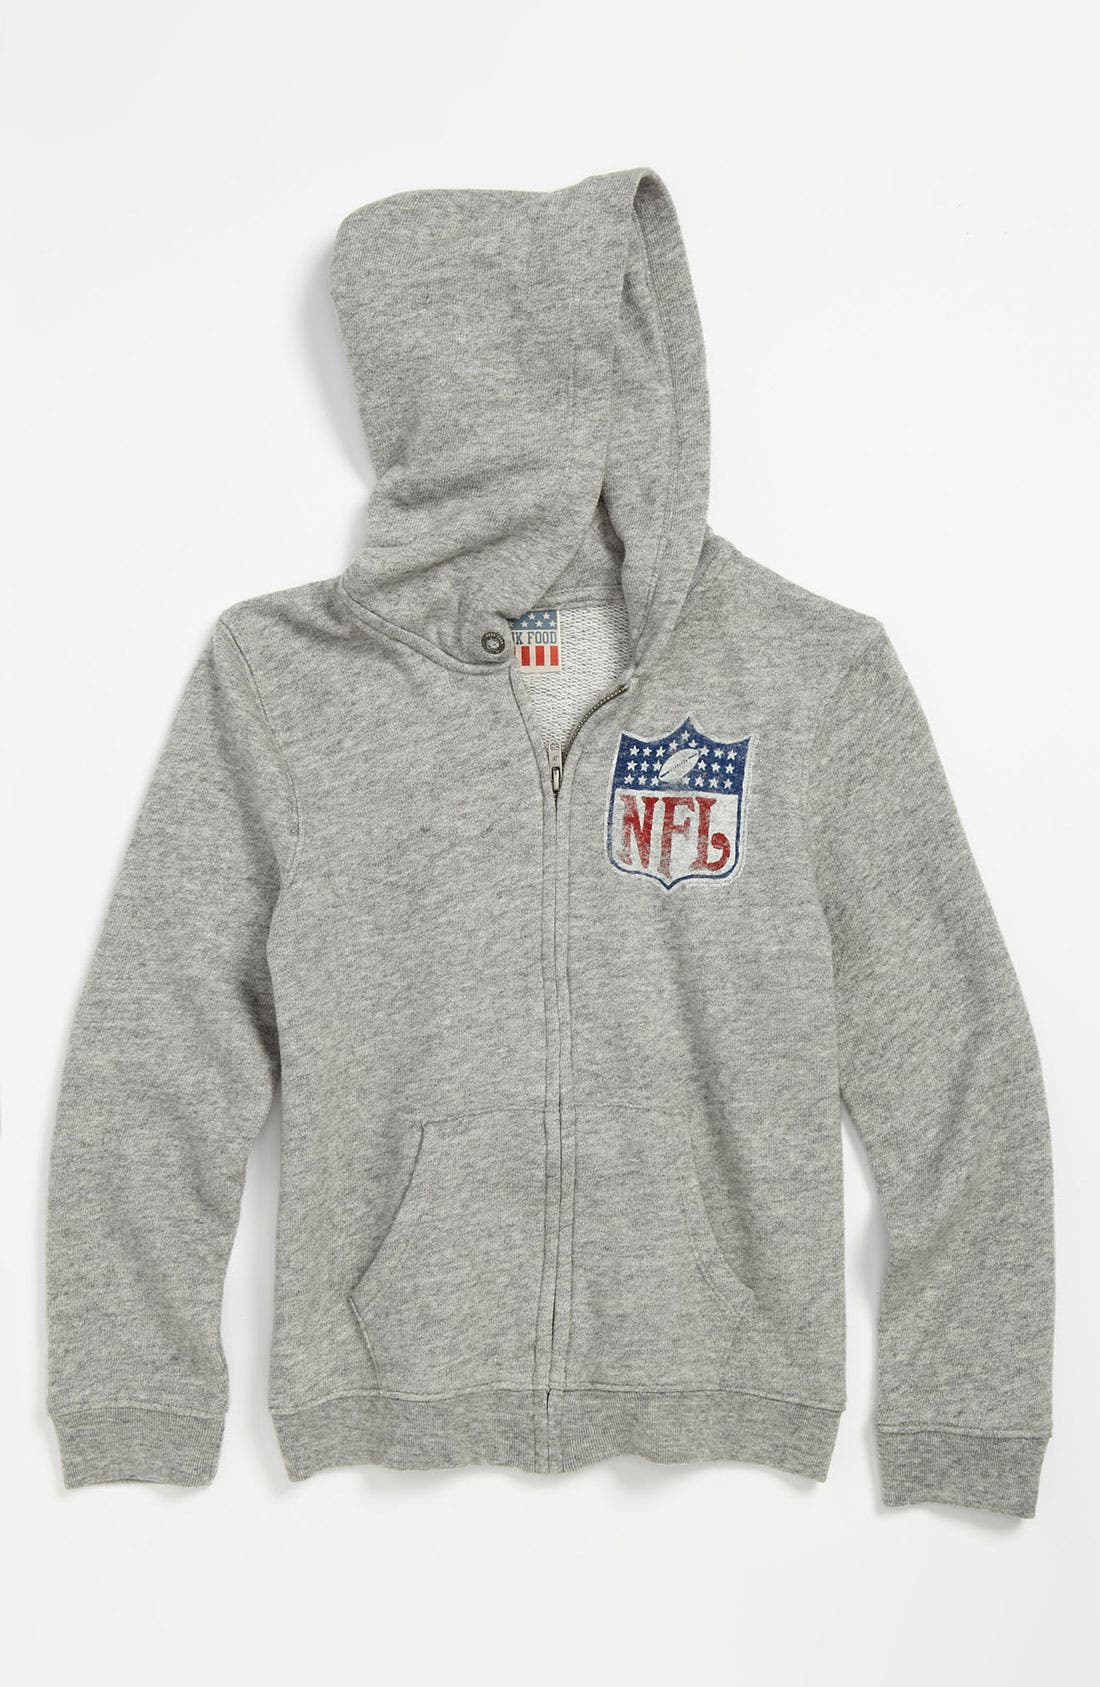 Alternate Image 1 Selected - Junk Food 'NFL Shield' Hoodie (Little Boys & Big Boys)